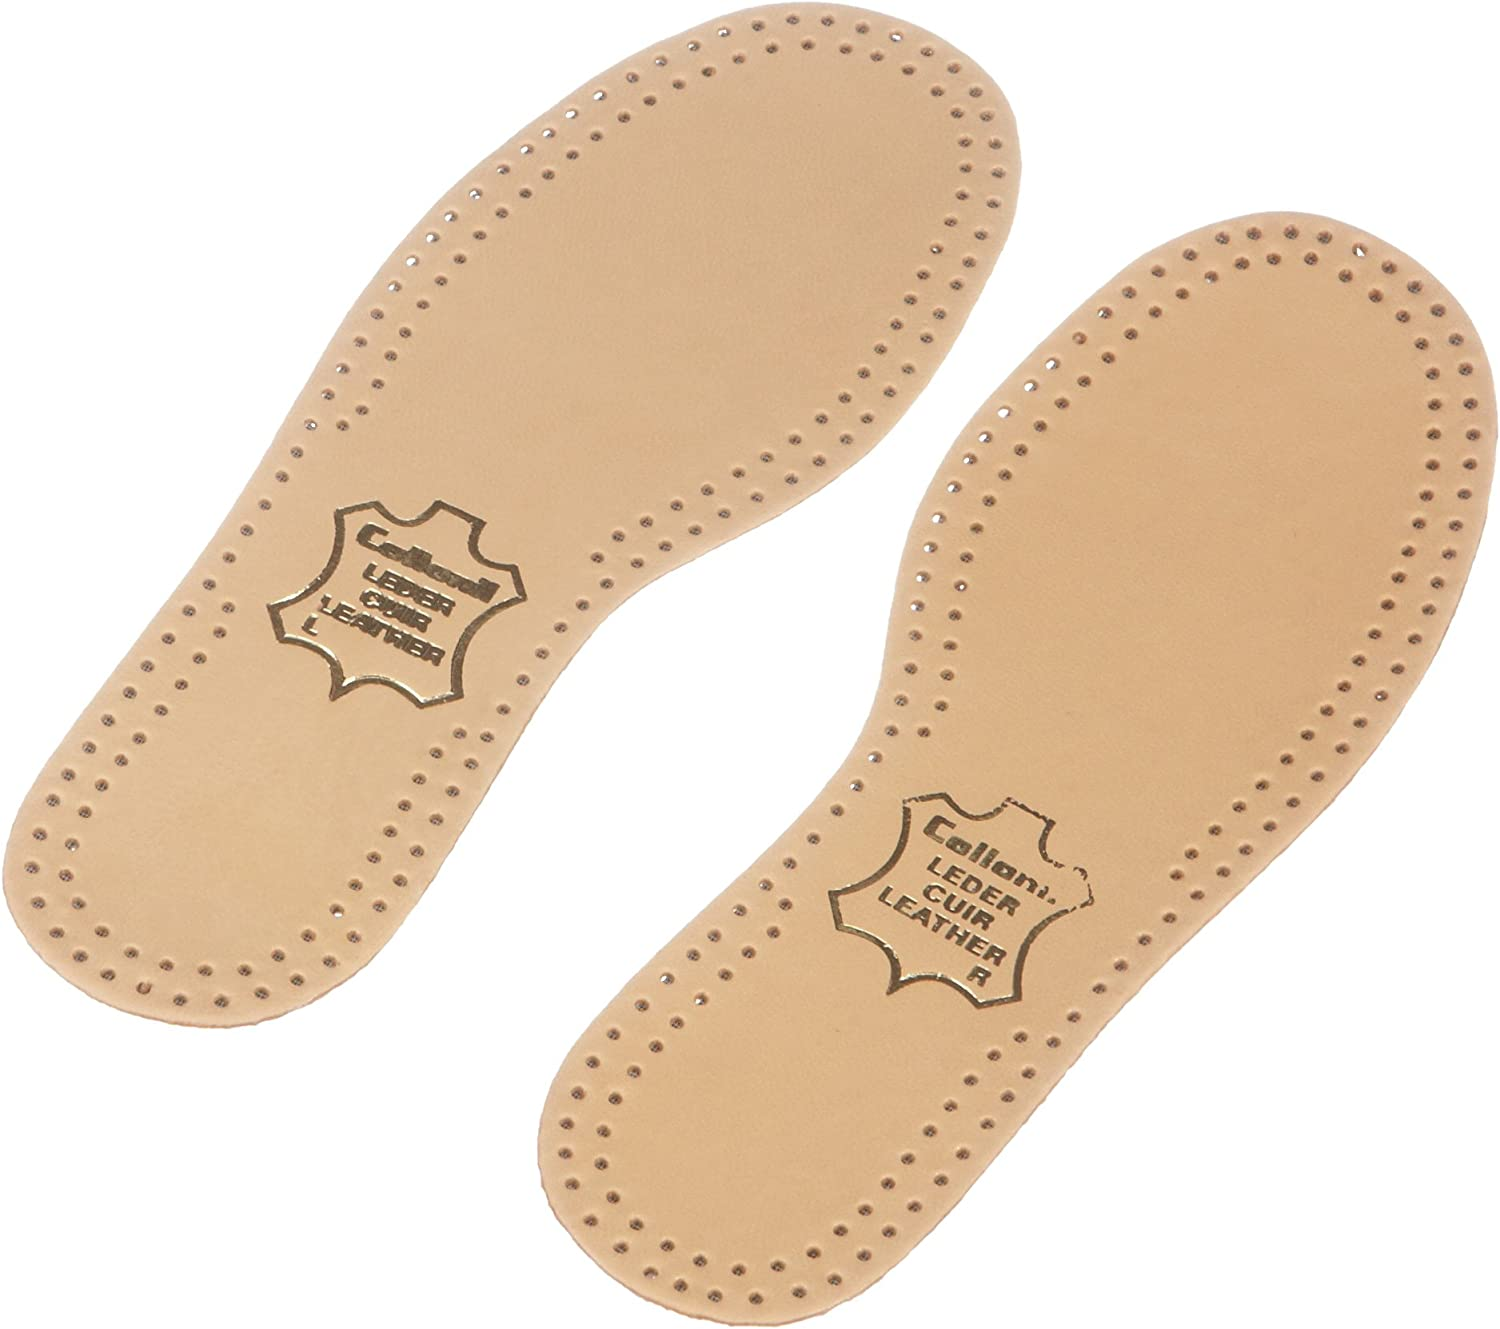 Collonil Unisex Max 52% OFF Kid's New Free Shipping Insoles UK 9.5 Child